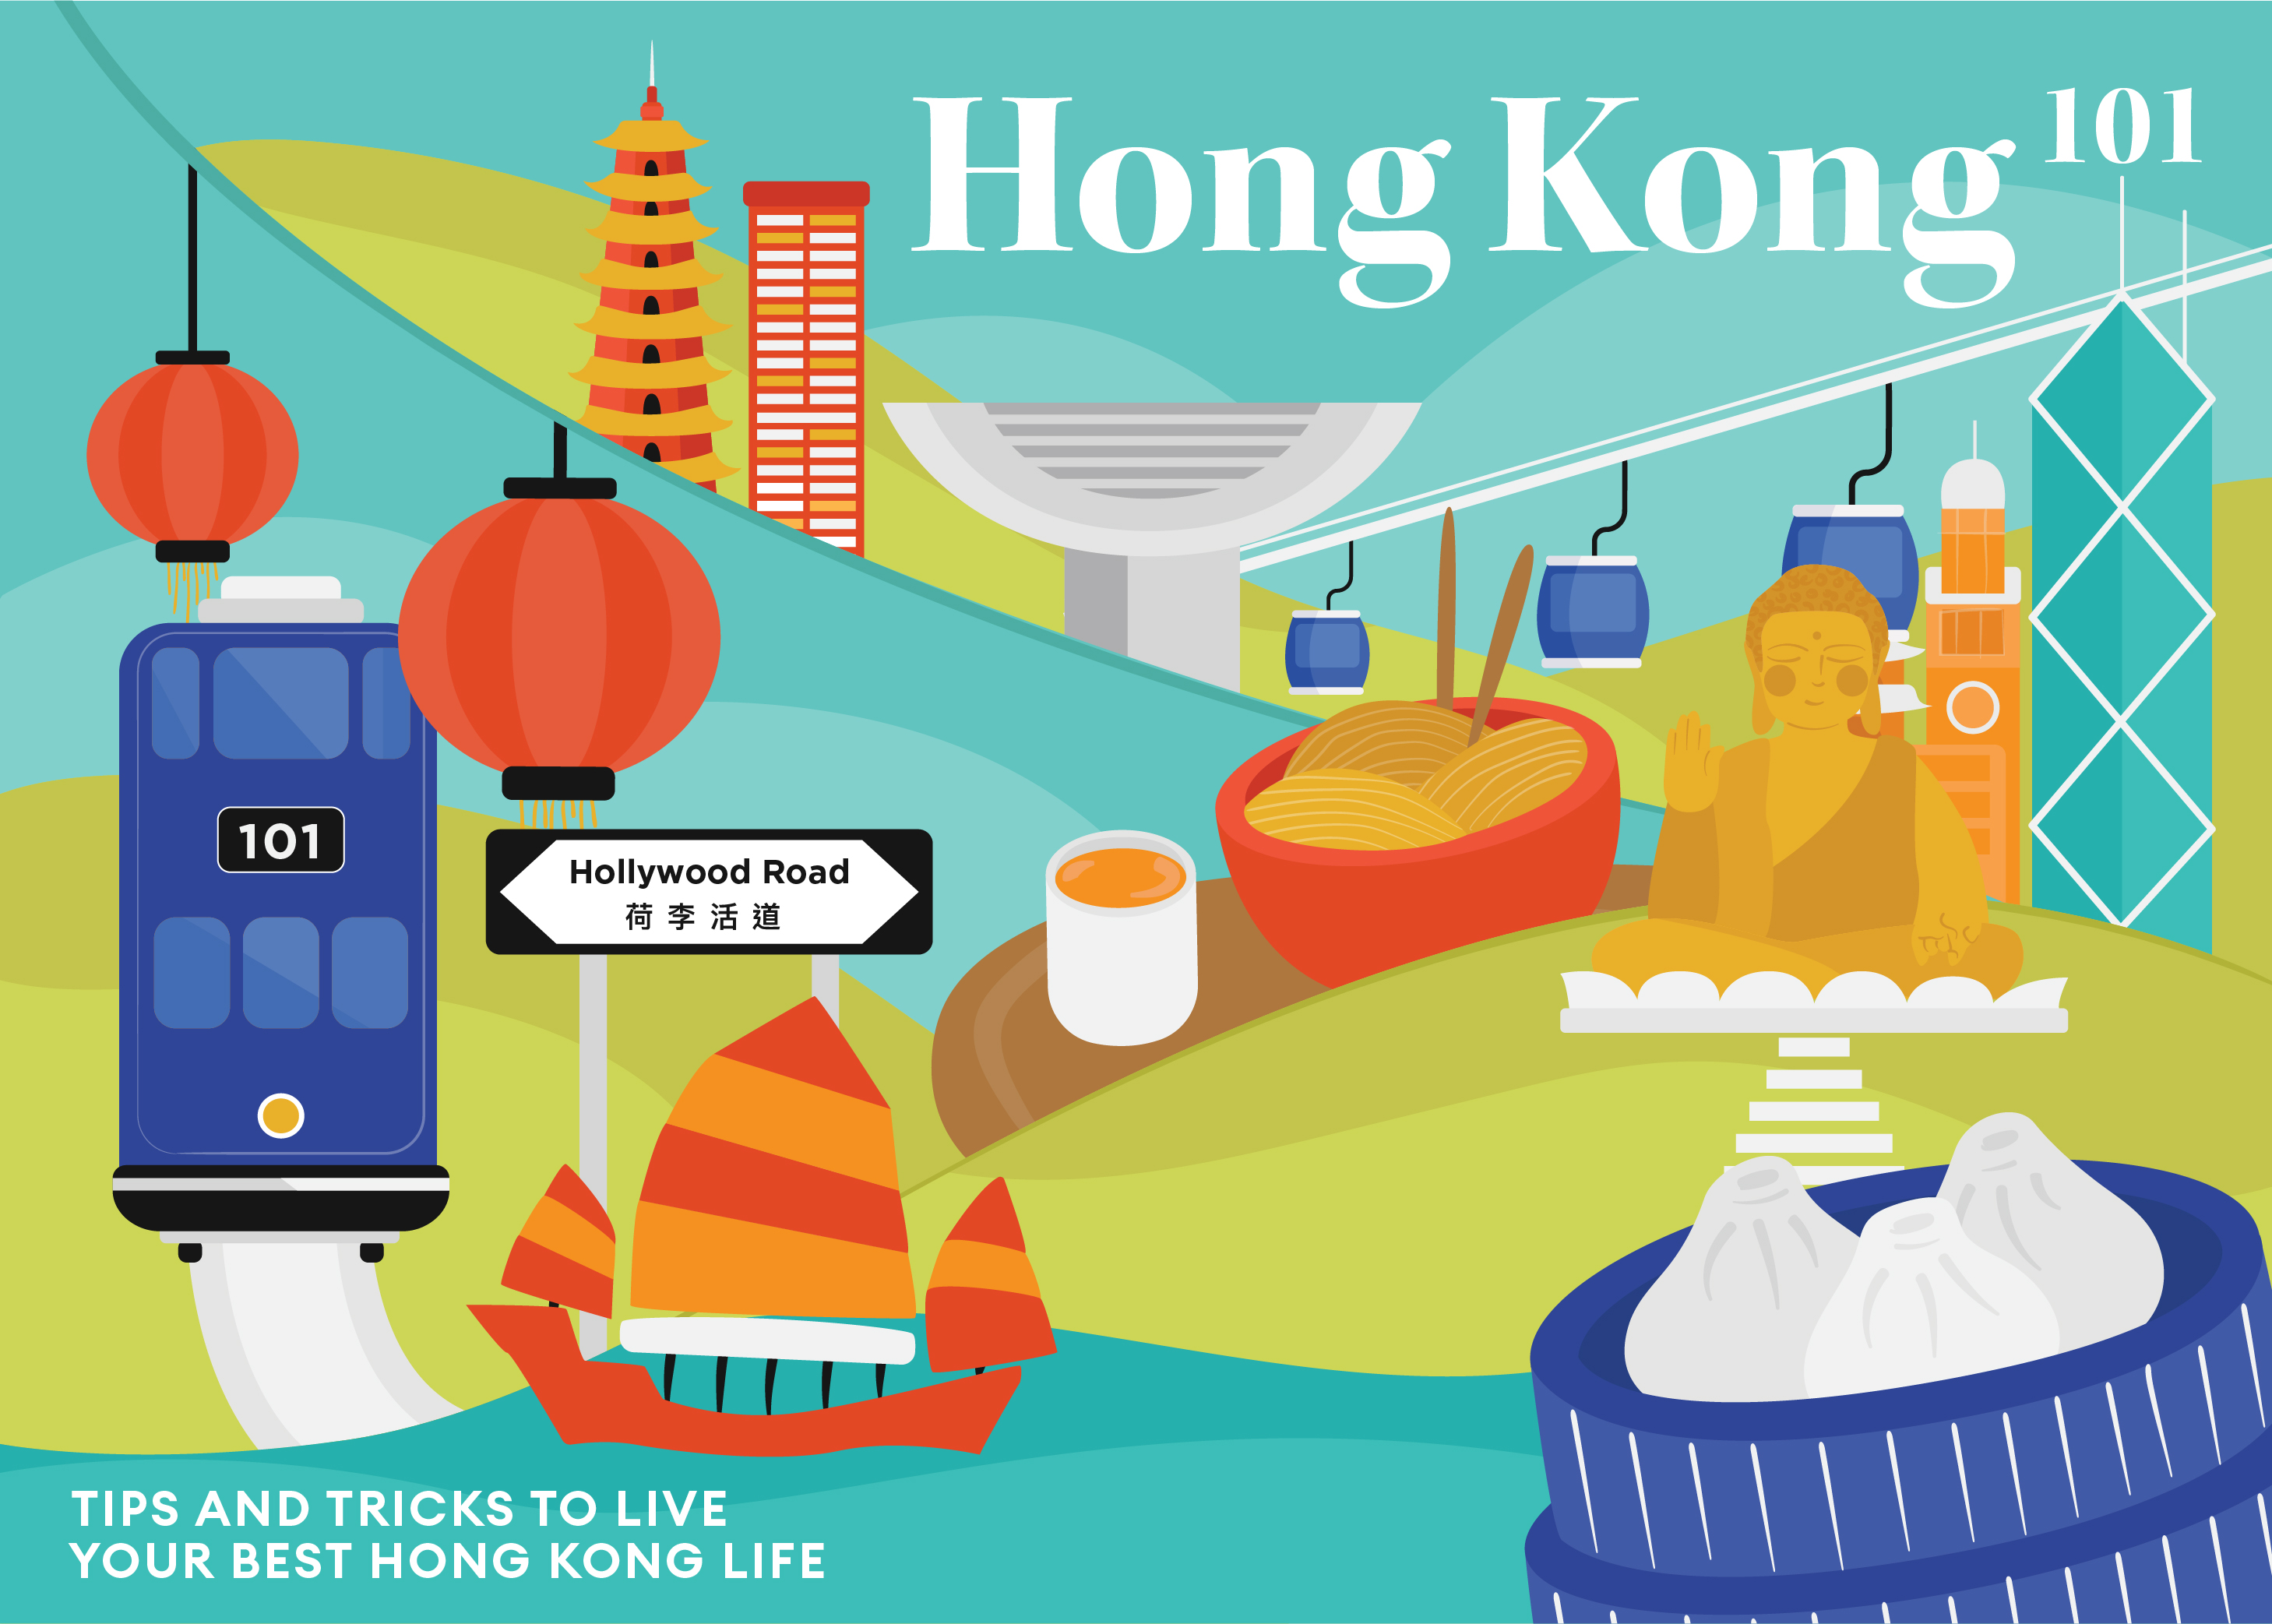 Want in on a night full of inspo, giveaways, and HK tips? Join us for Hong Kong 101 in partnership with HSBC Expat